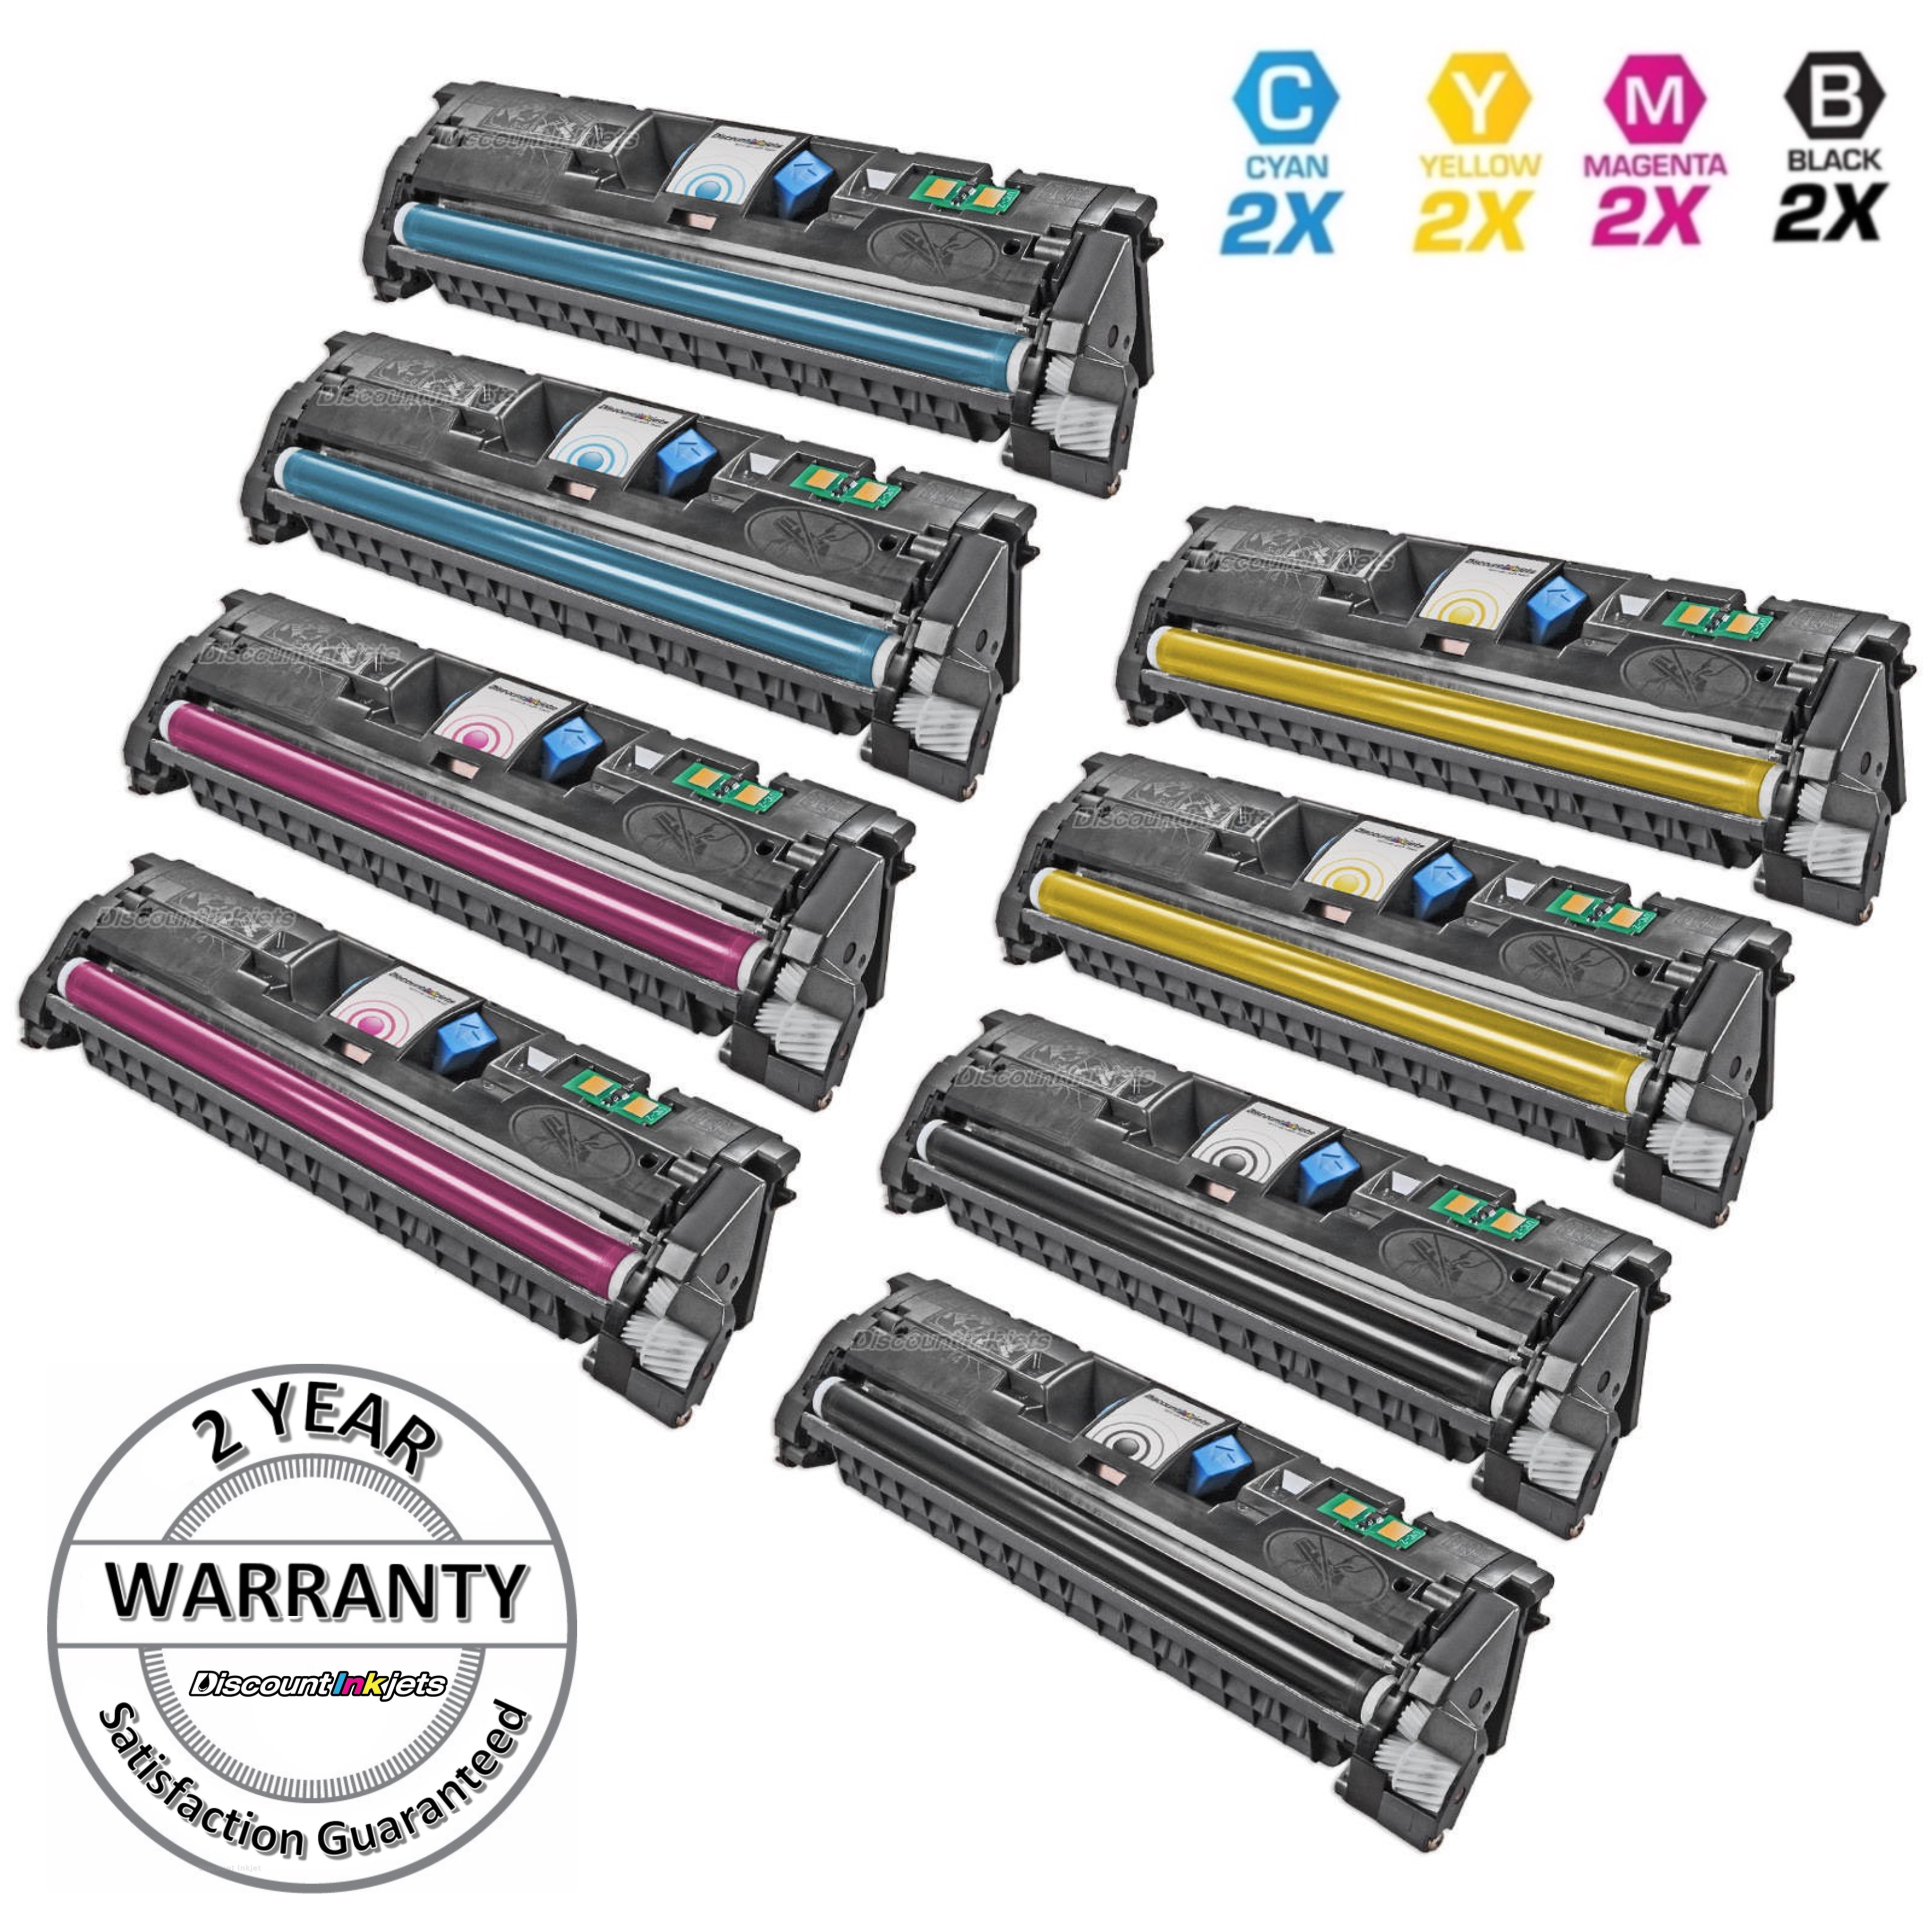 Q3962A HP 122A Yellow Remanufactured Replacement for HP 2550 2550L 2820 2840